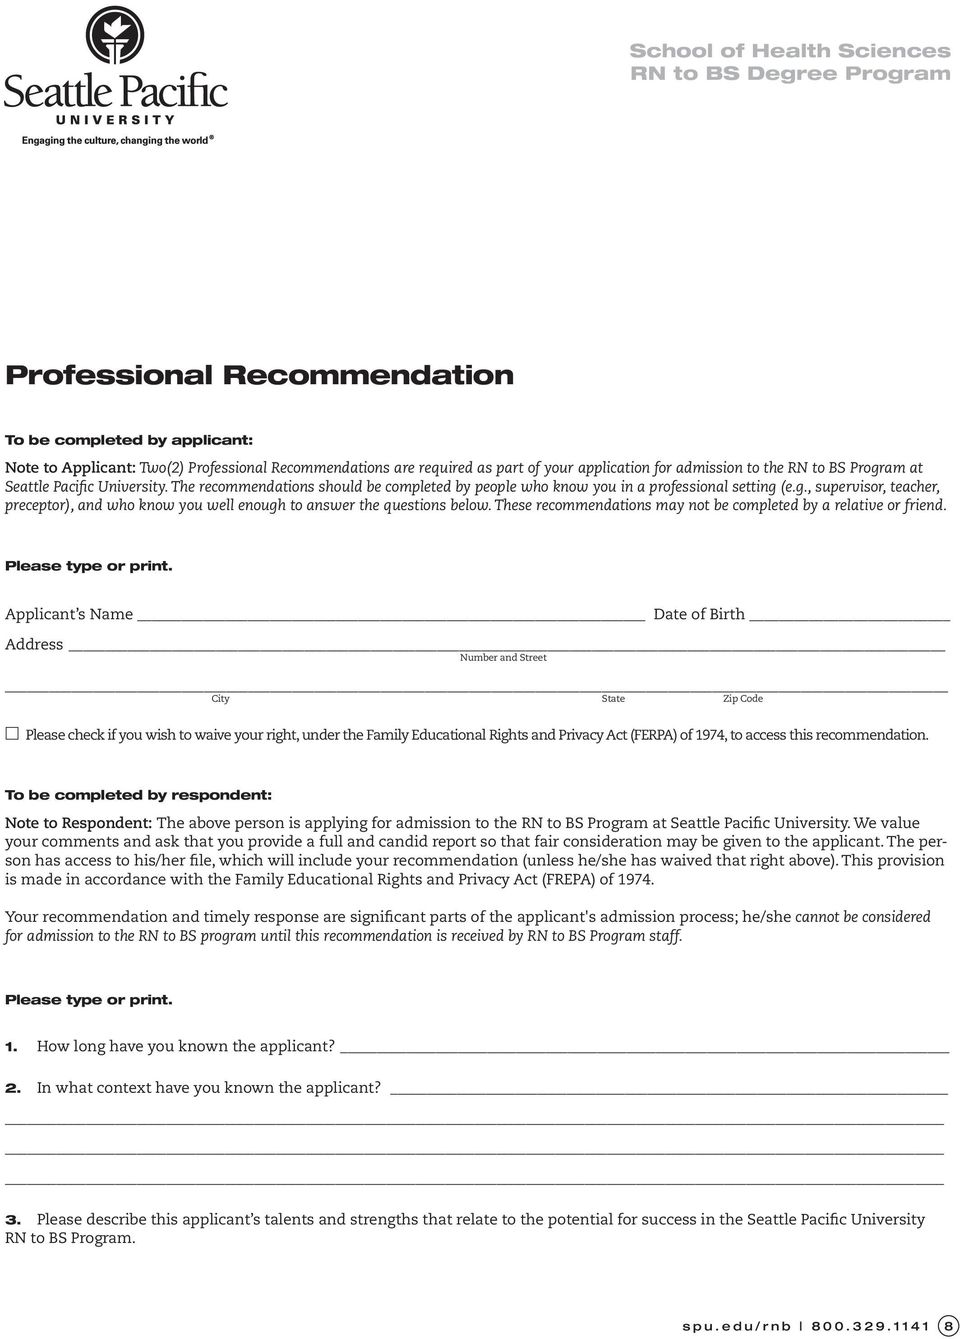 (e.g., supervisor, teacher, preceptor), and who know you well enough to answer the questions below. These recommendations may not be completed by a relative or friend. Please type or print.